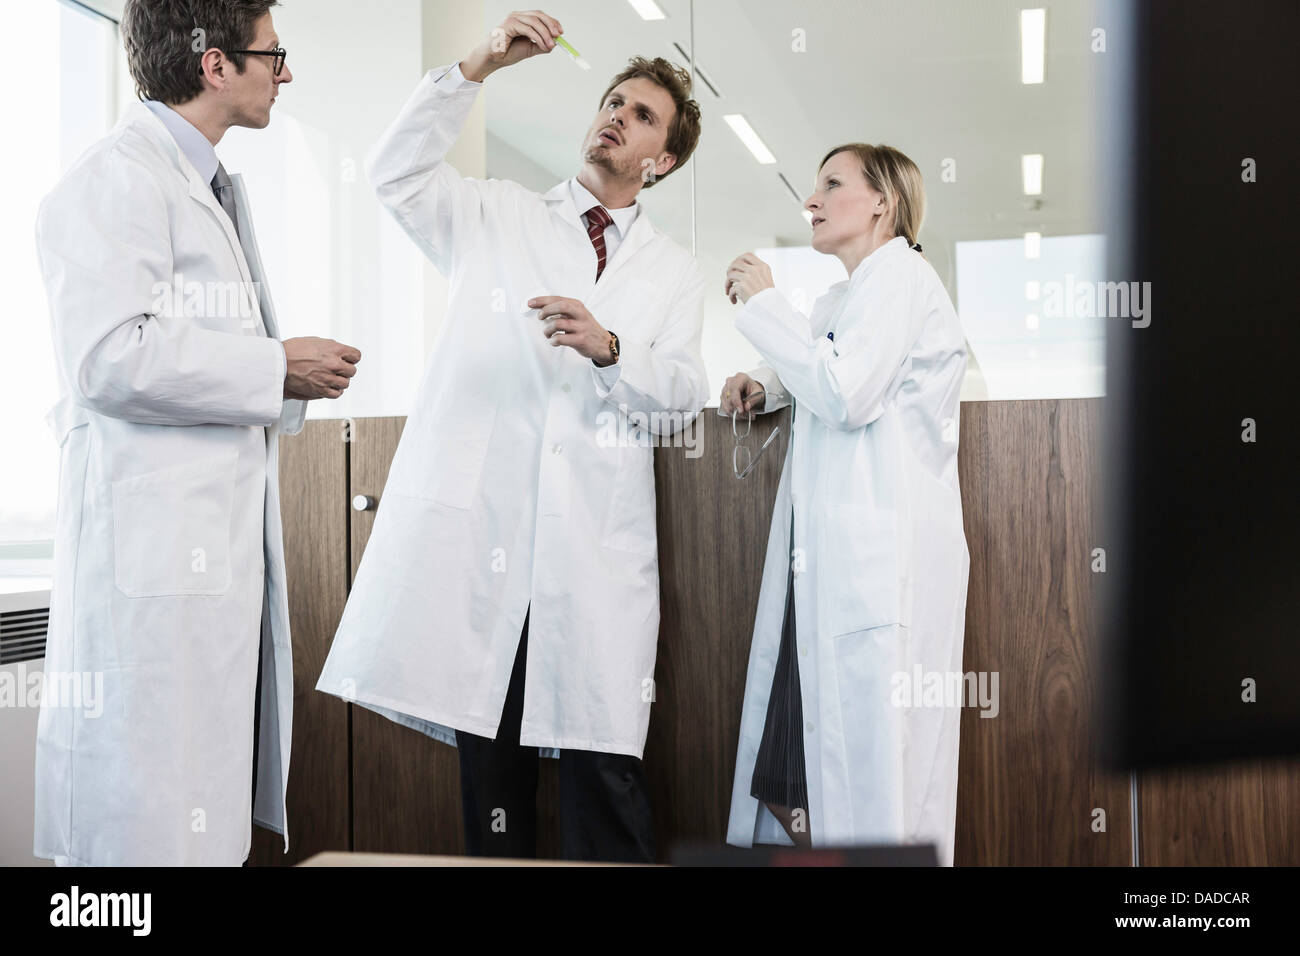 Three people wearing lab coats looking at test tube - Stock Image